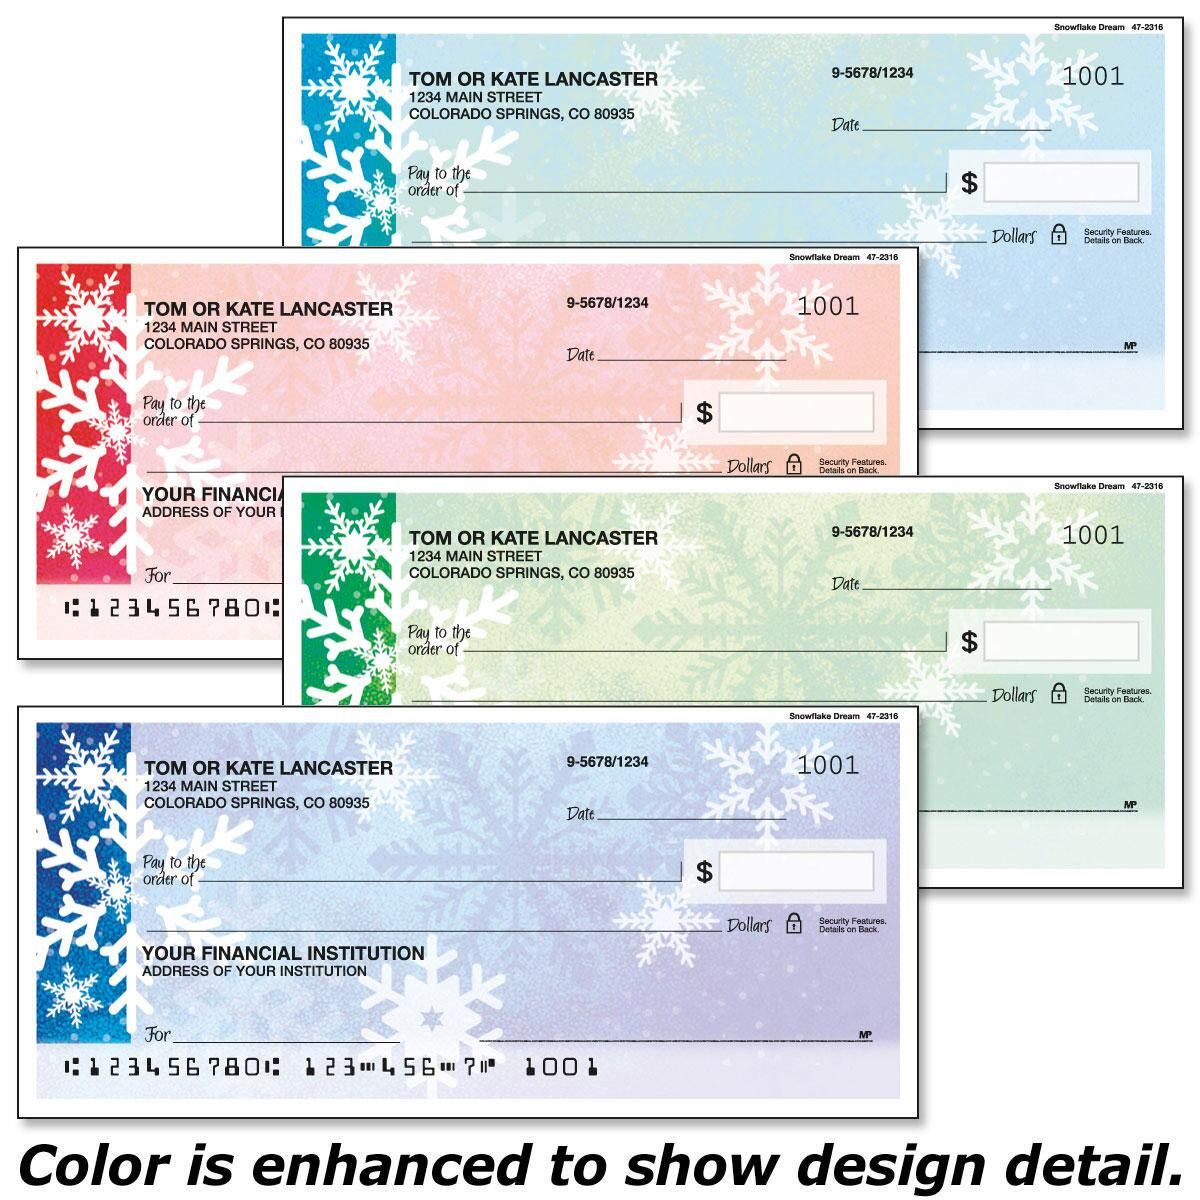 Snowflake Dream Duplicate Checks